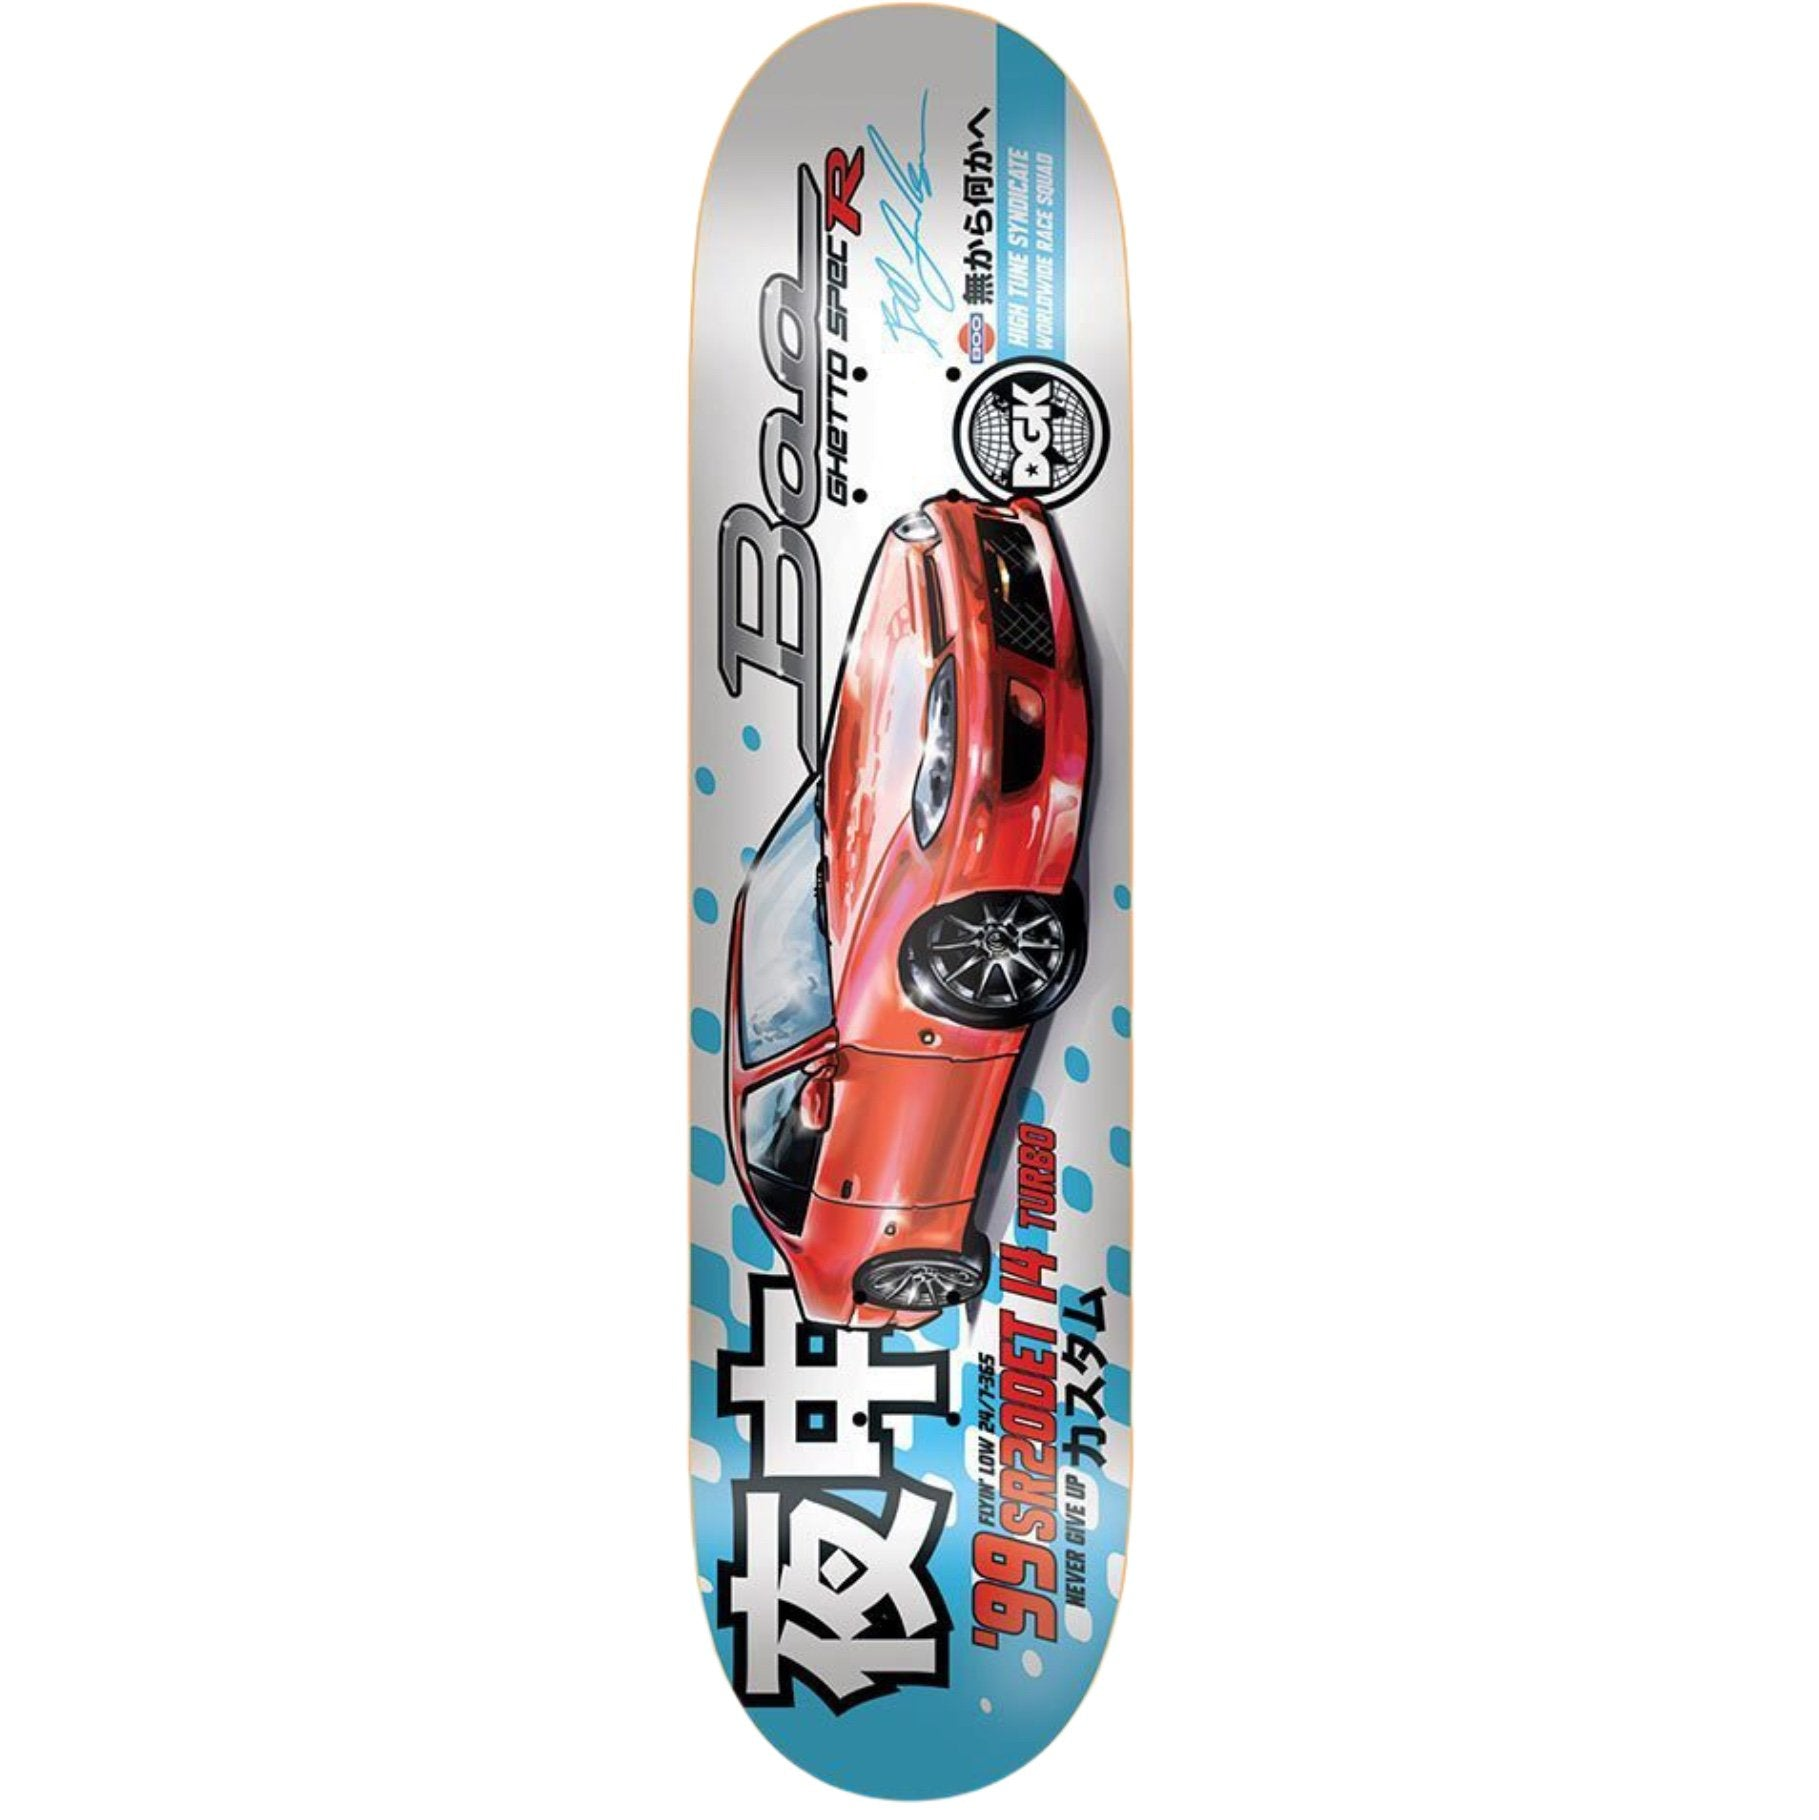 DGK Tuner Boo Johnson Deck 8.25""